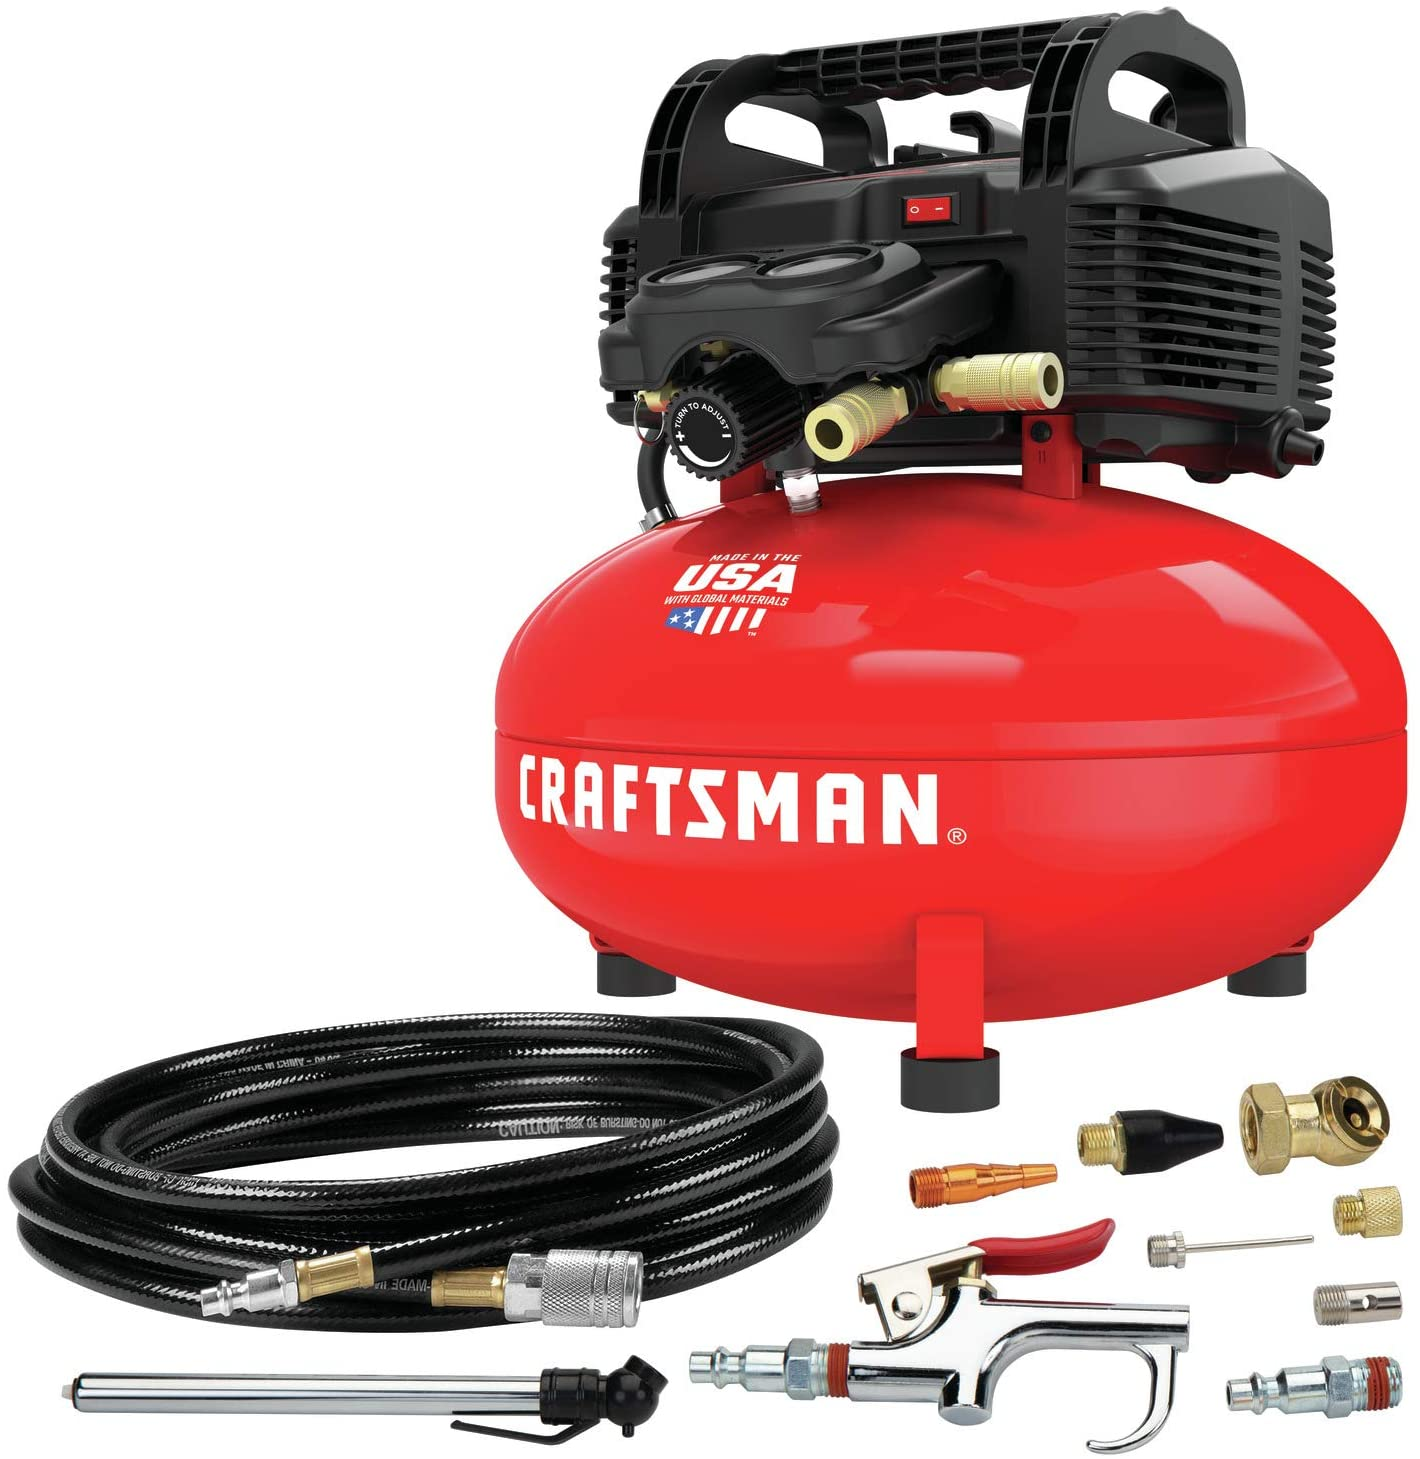 CRAFTSMAN Air Compressor with 13 Piece Accessory Kit